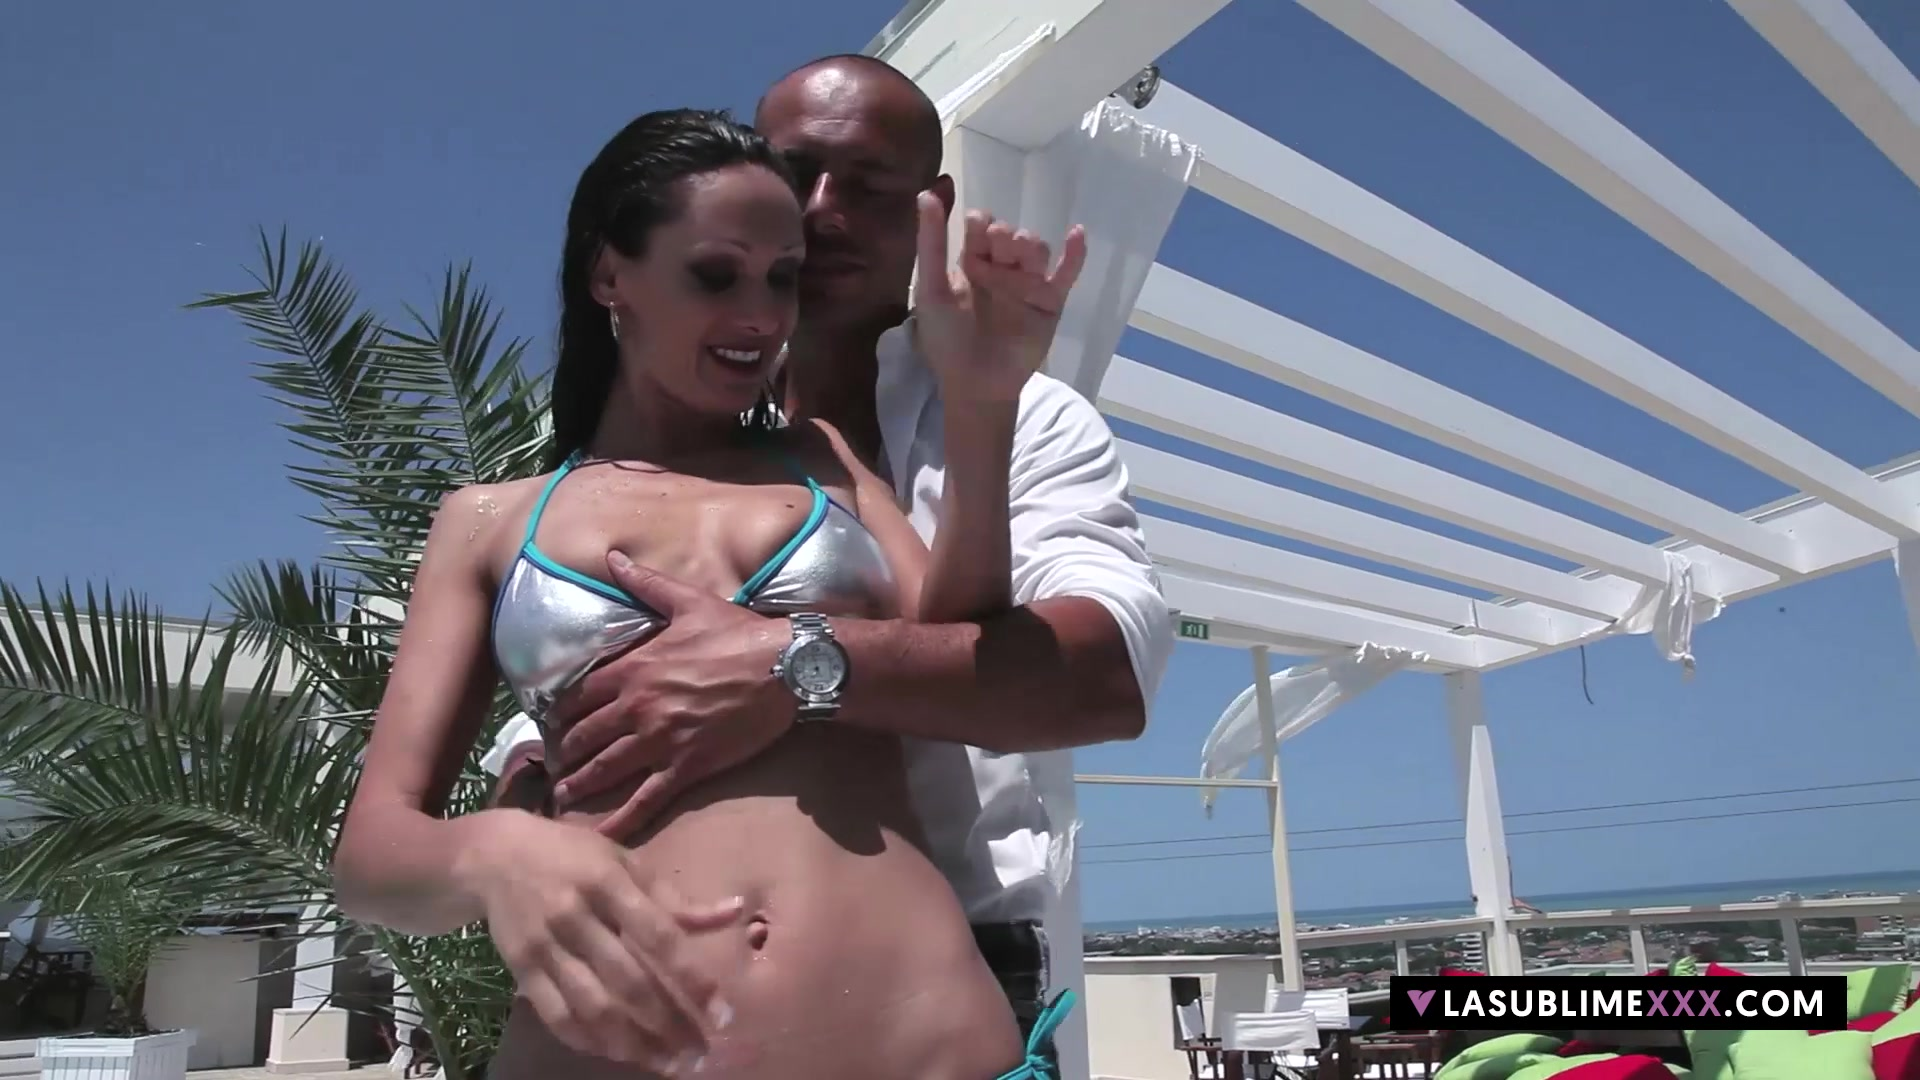 LaSublimeXXX Cynthia Vellons gets her pussy destroyed